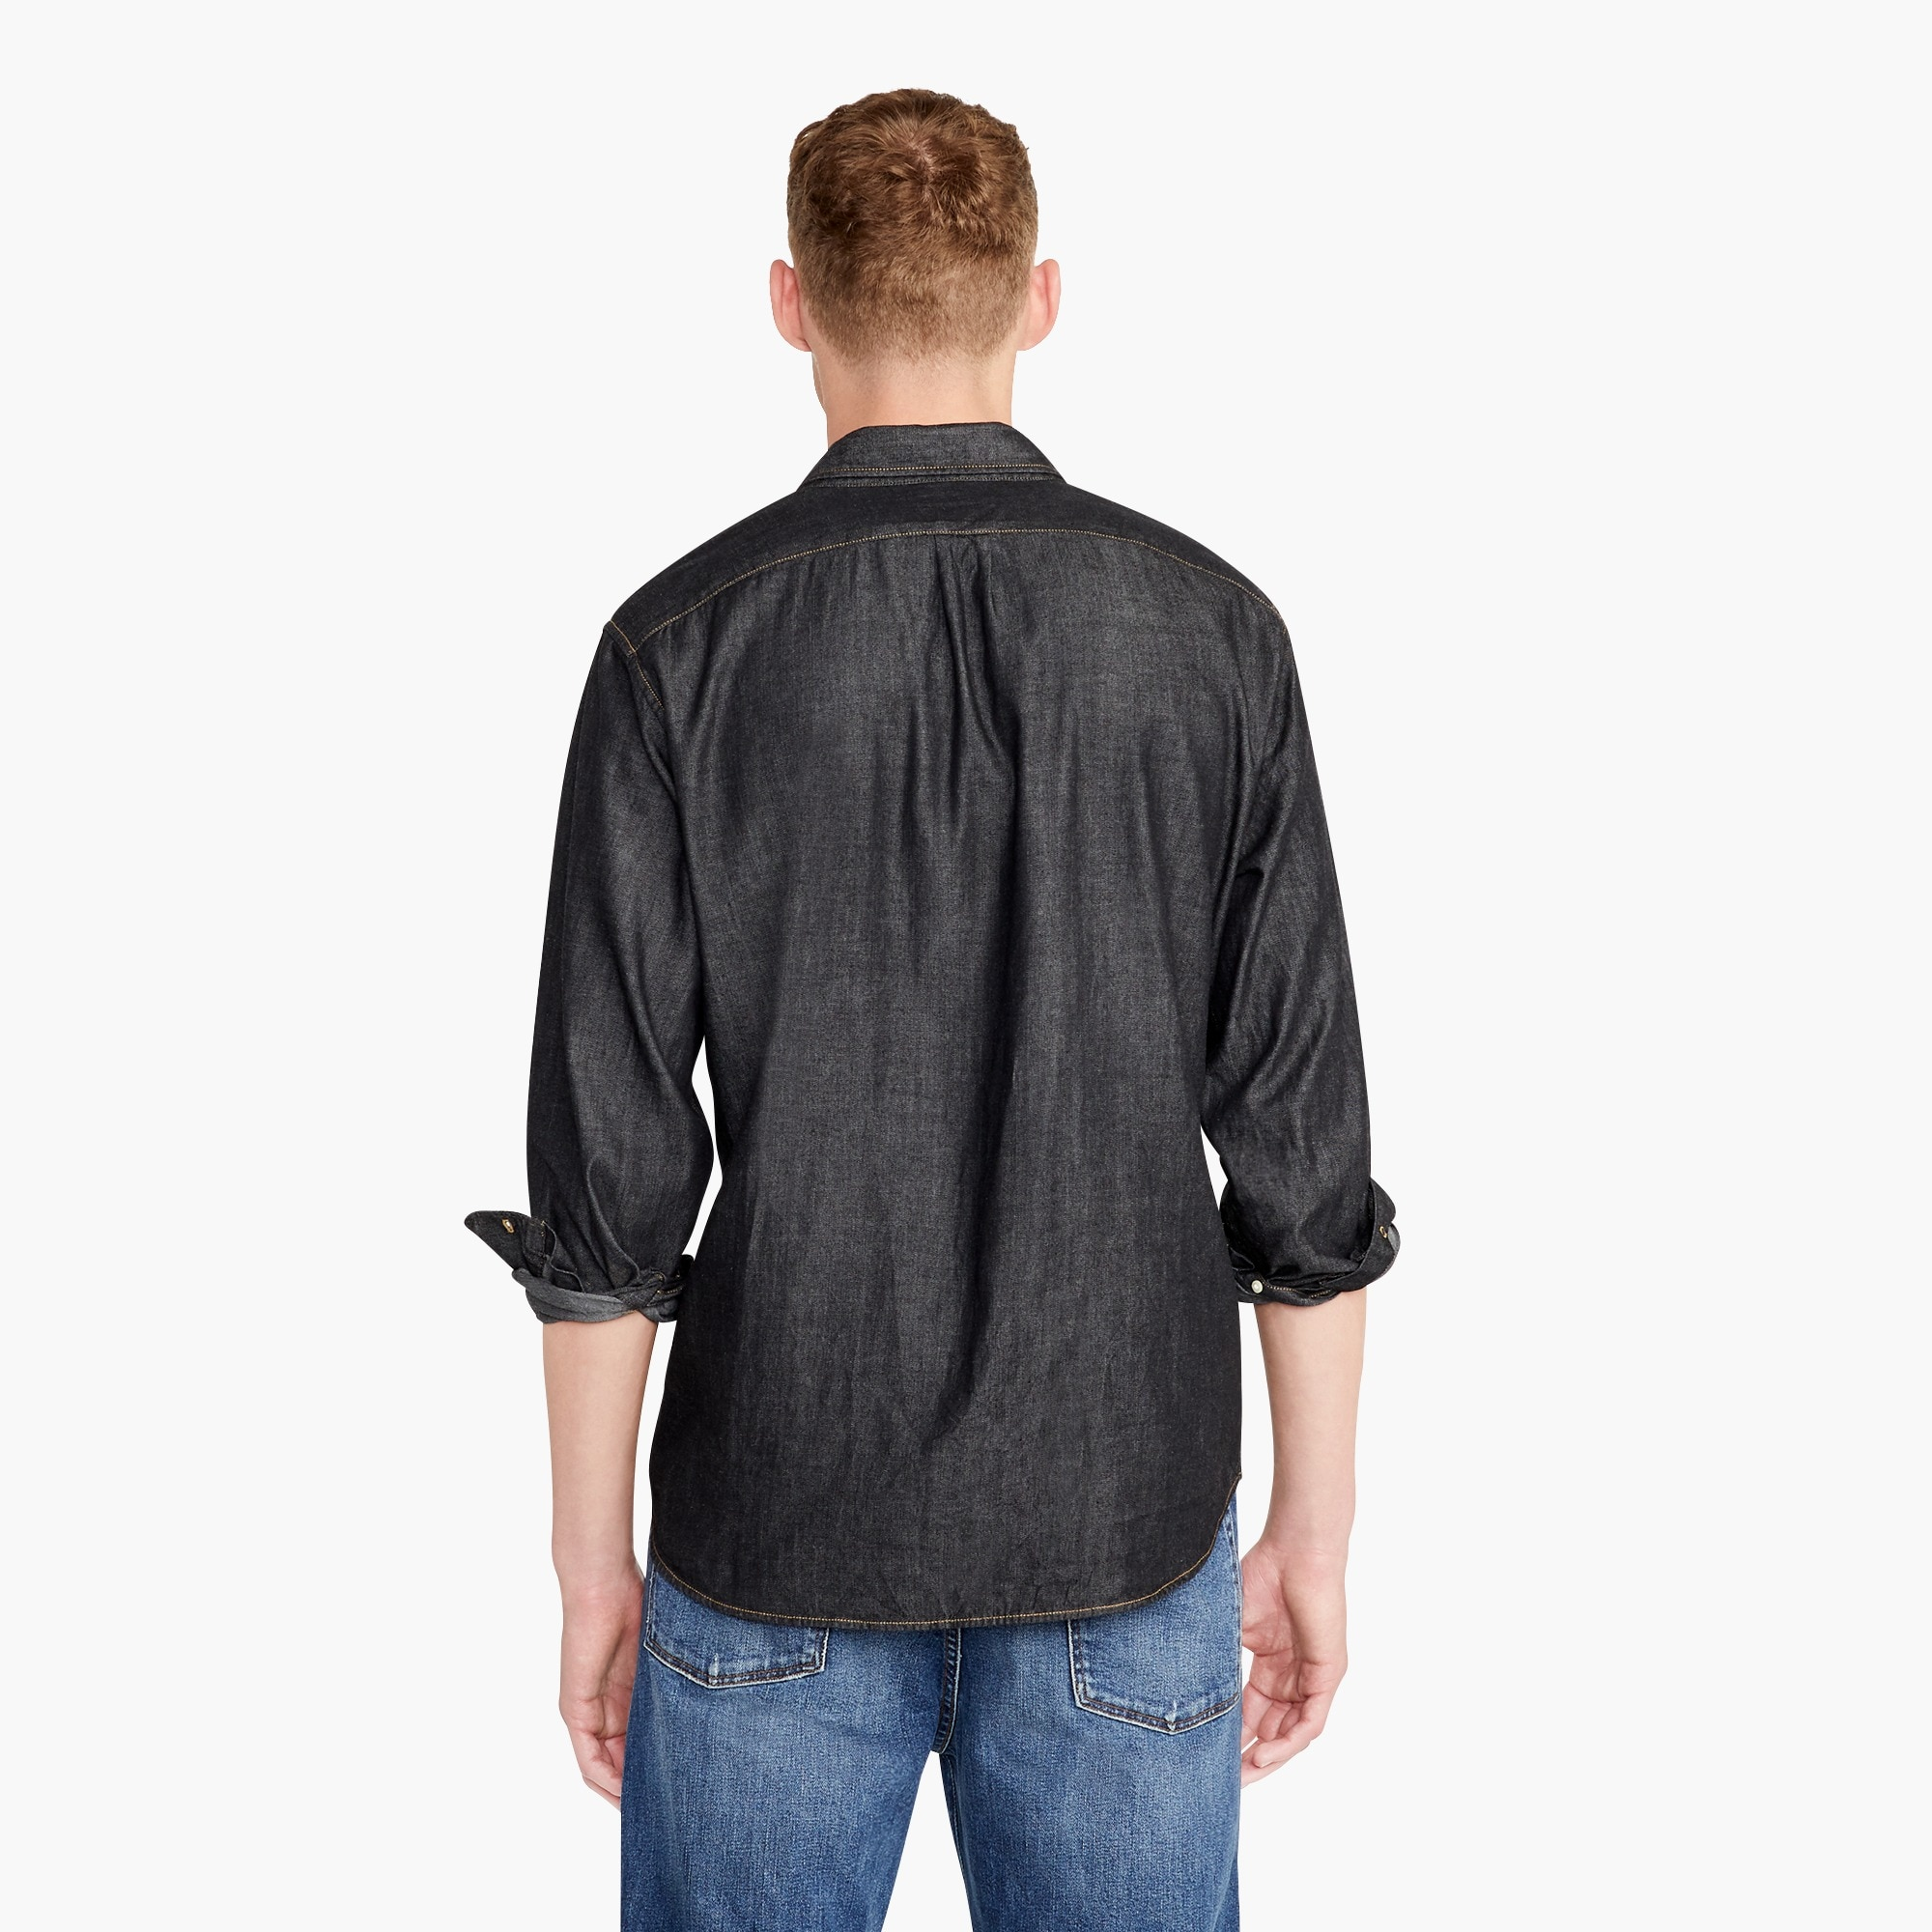 Image 4 for Slim lightweight denim shirt in black